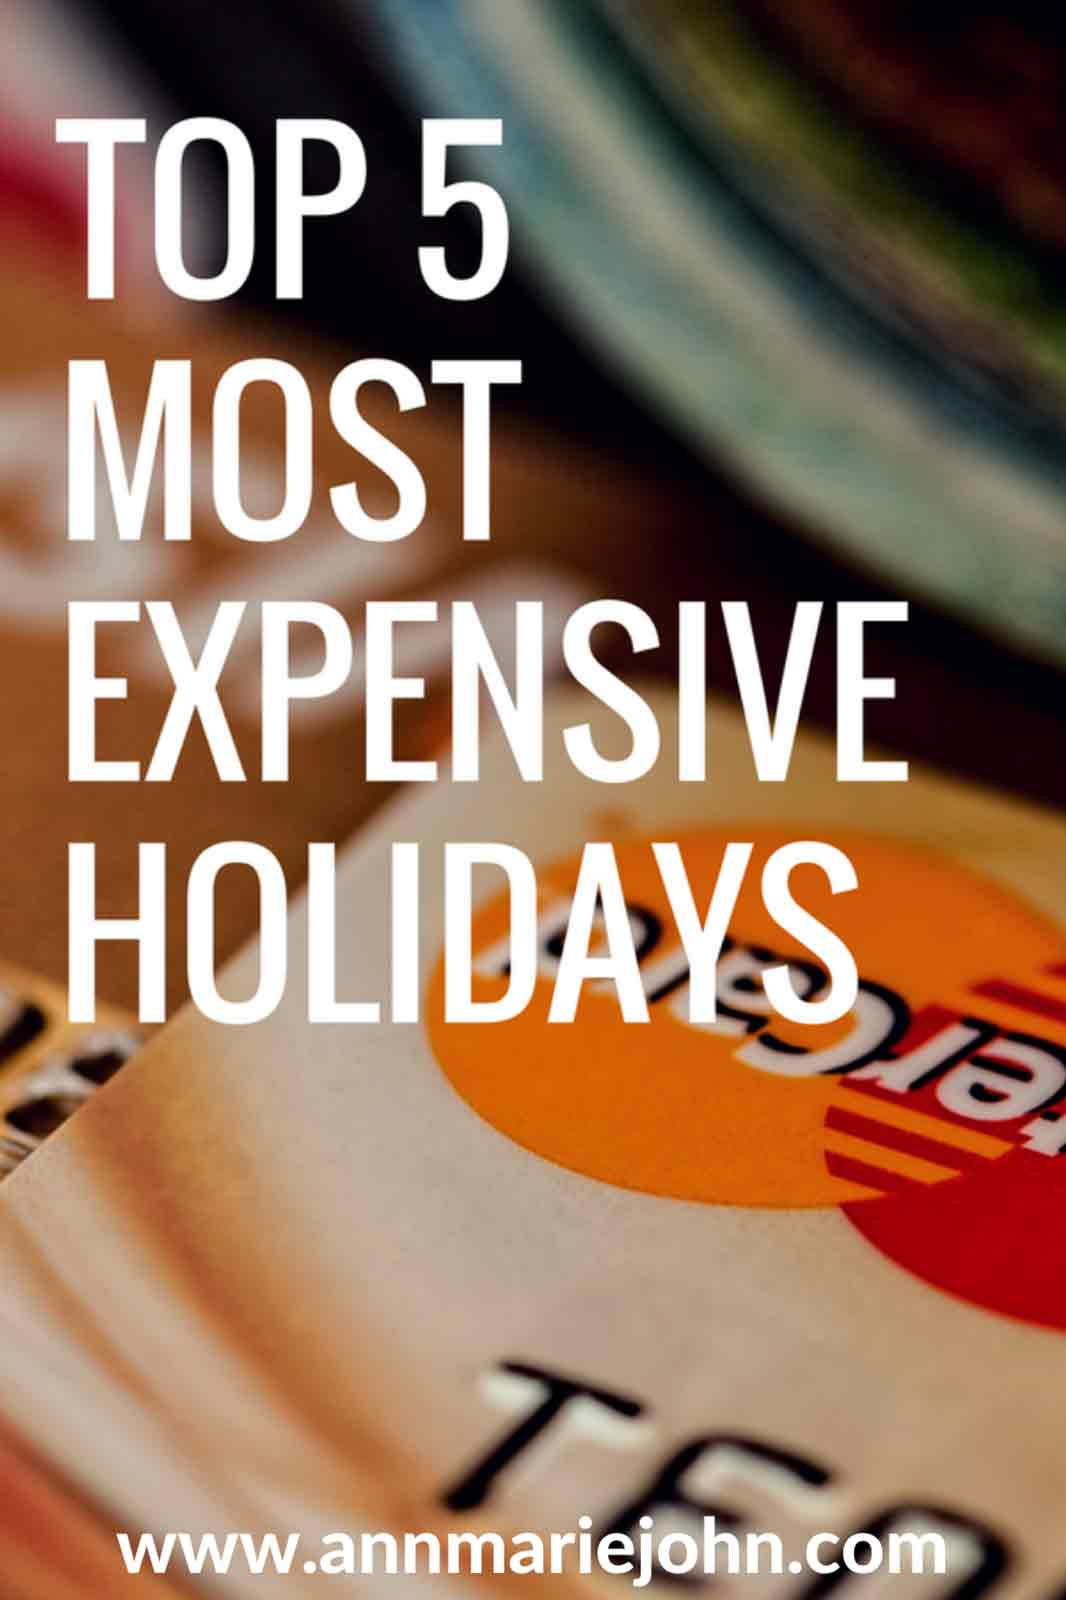 Top 5 Most Expensive Holidays